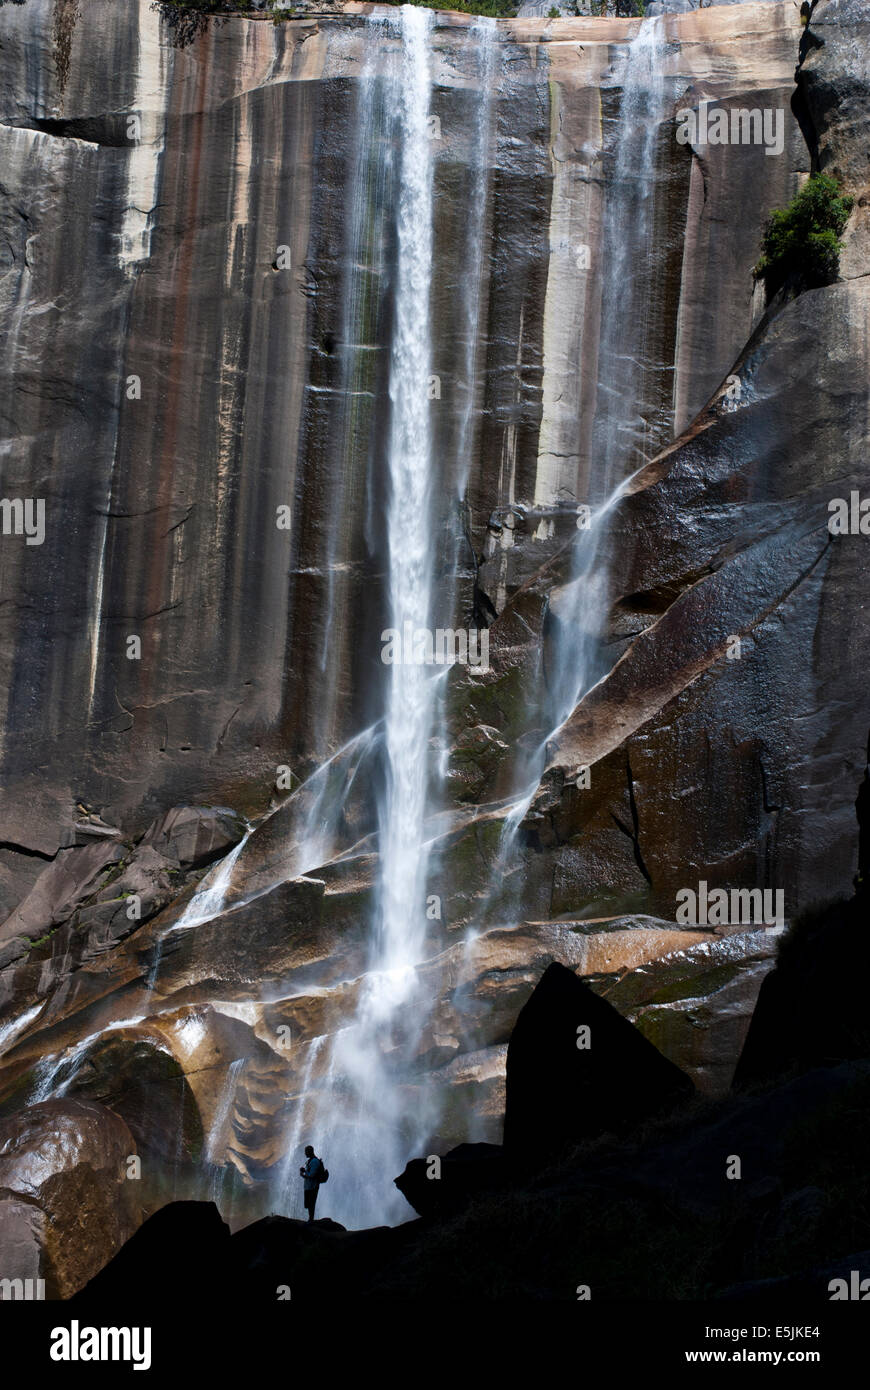 Silhouette of a person in front of Vernal Fall, Yosemite National Park, California USA Stock Photo